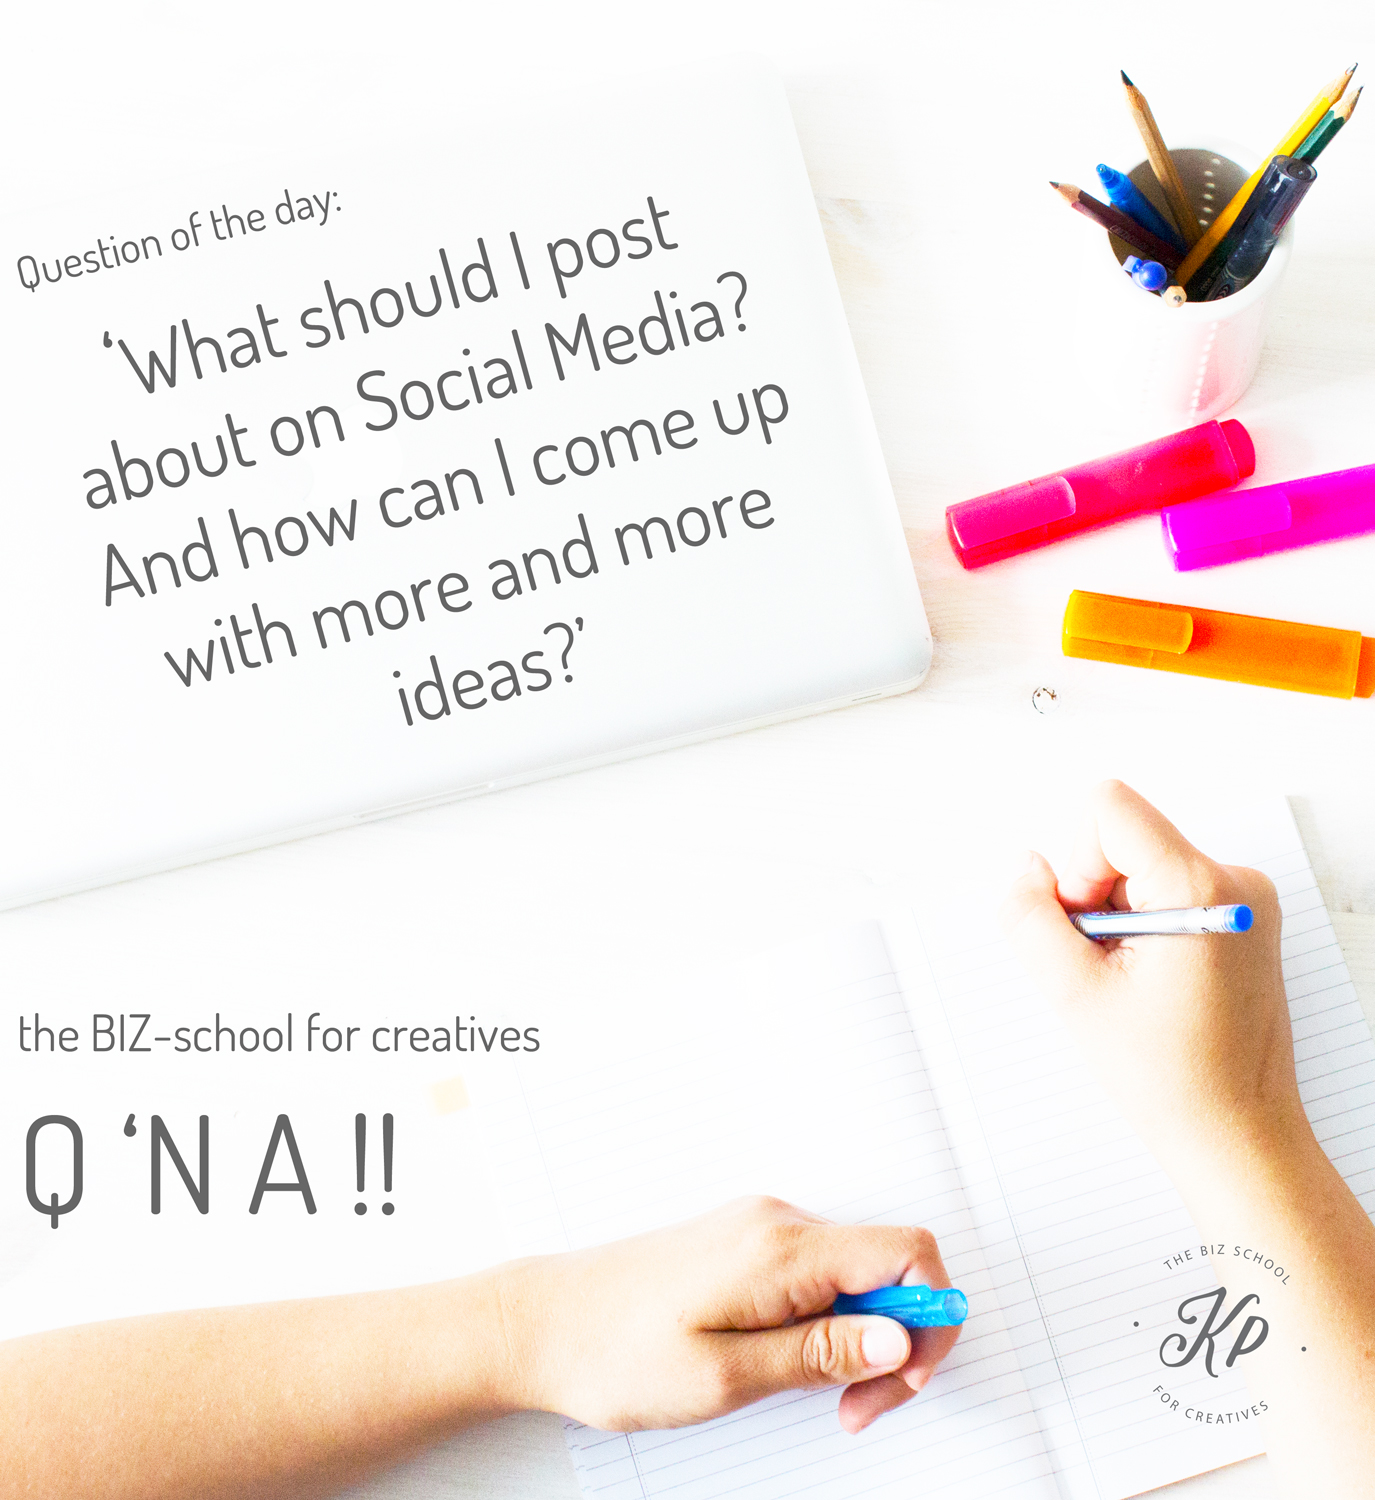 the BIZ-school for creatives Q 'N A, Question of the day: 'What should I post about on Social Media? And how can I come up with more and more ideas?' Read the full answer at www.kerstinpressler.com